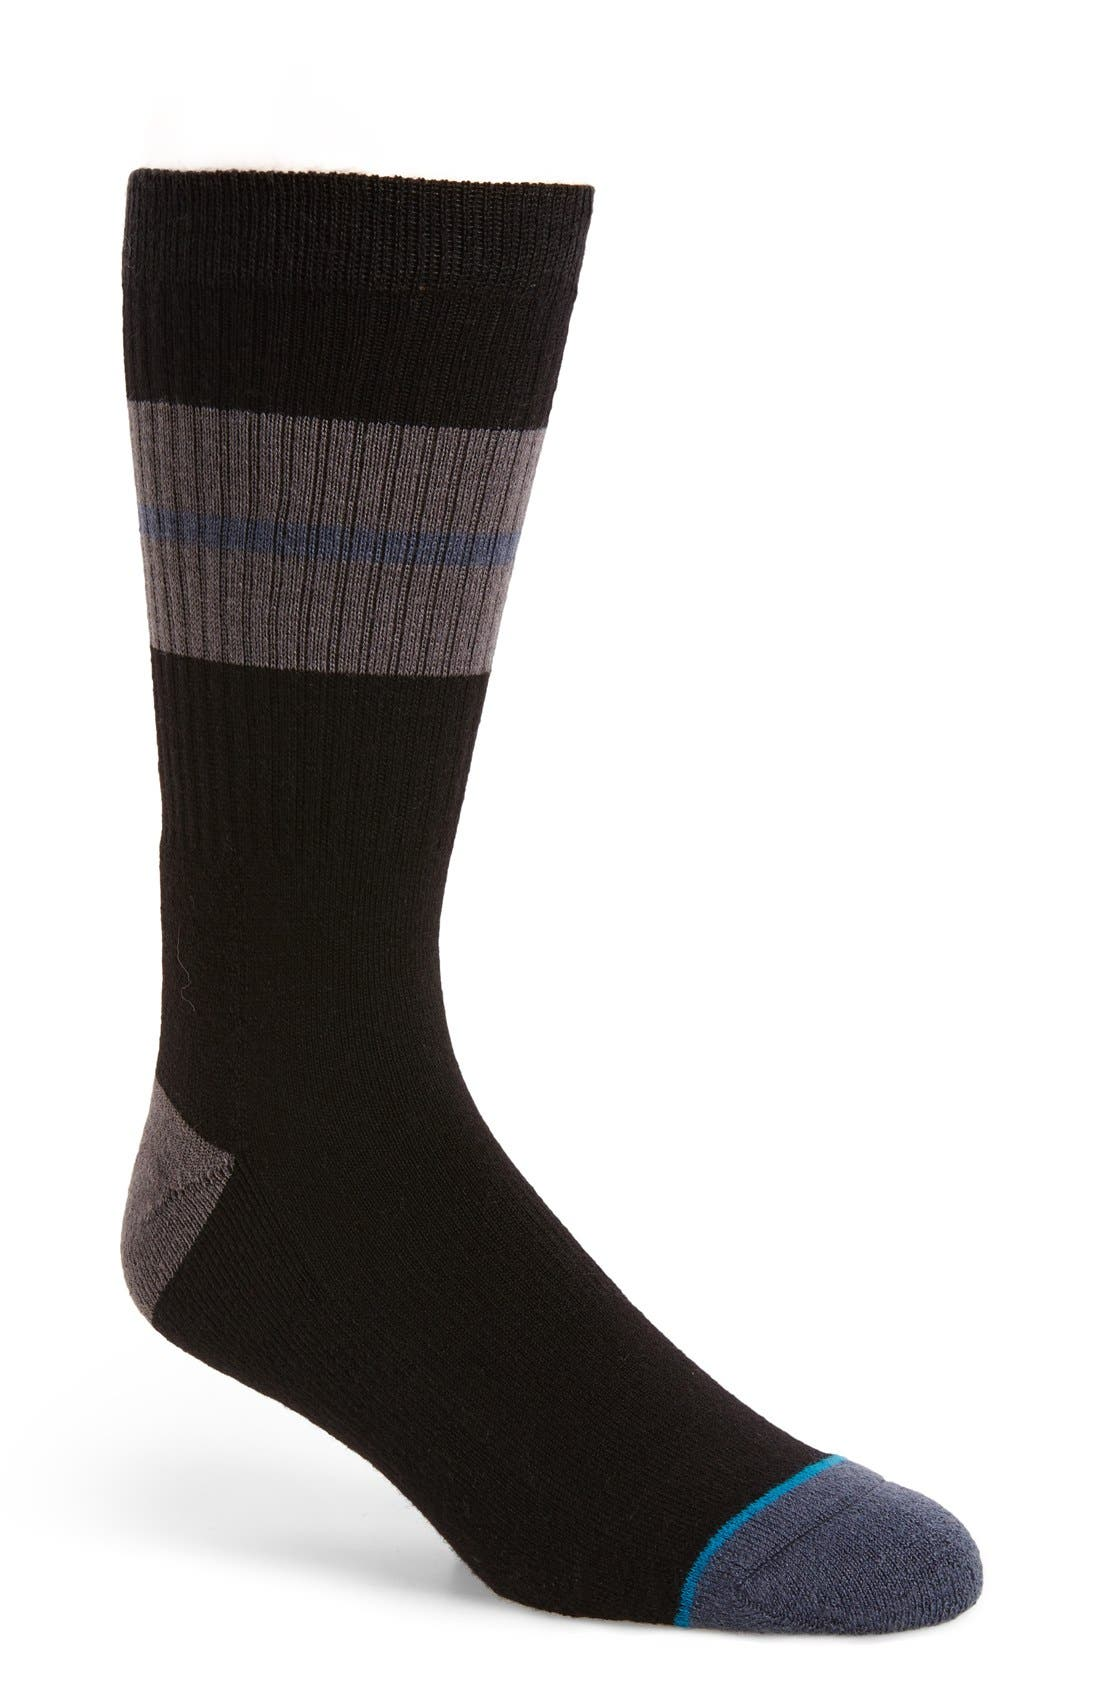 Sequoia Classic Crew Socks,                         Main,                         color, 001